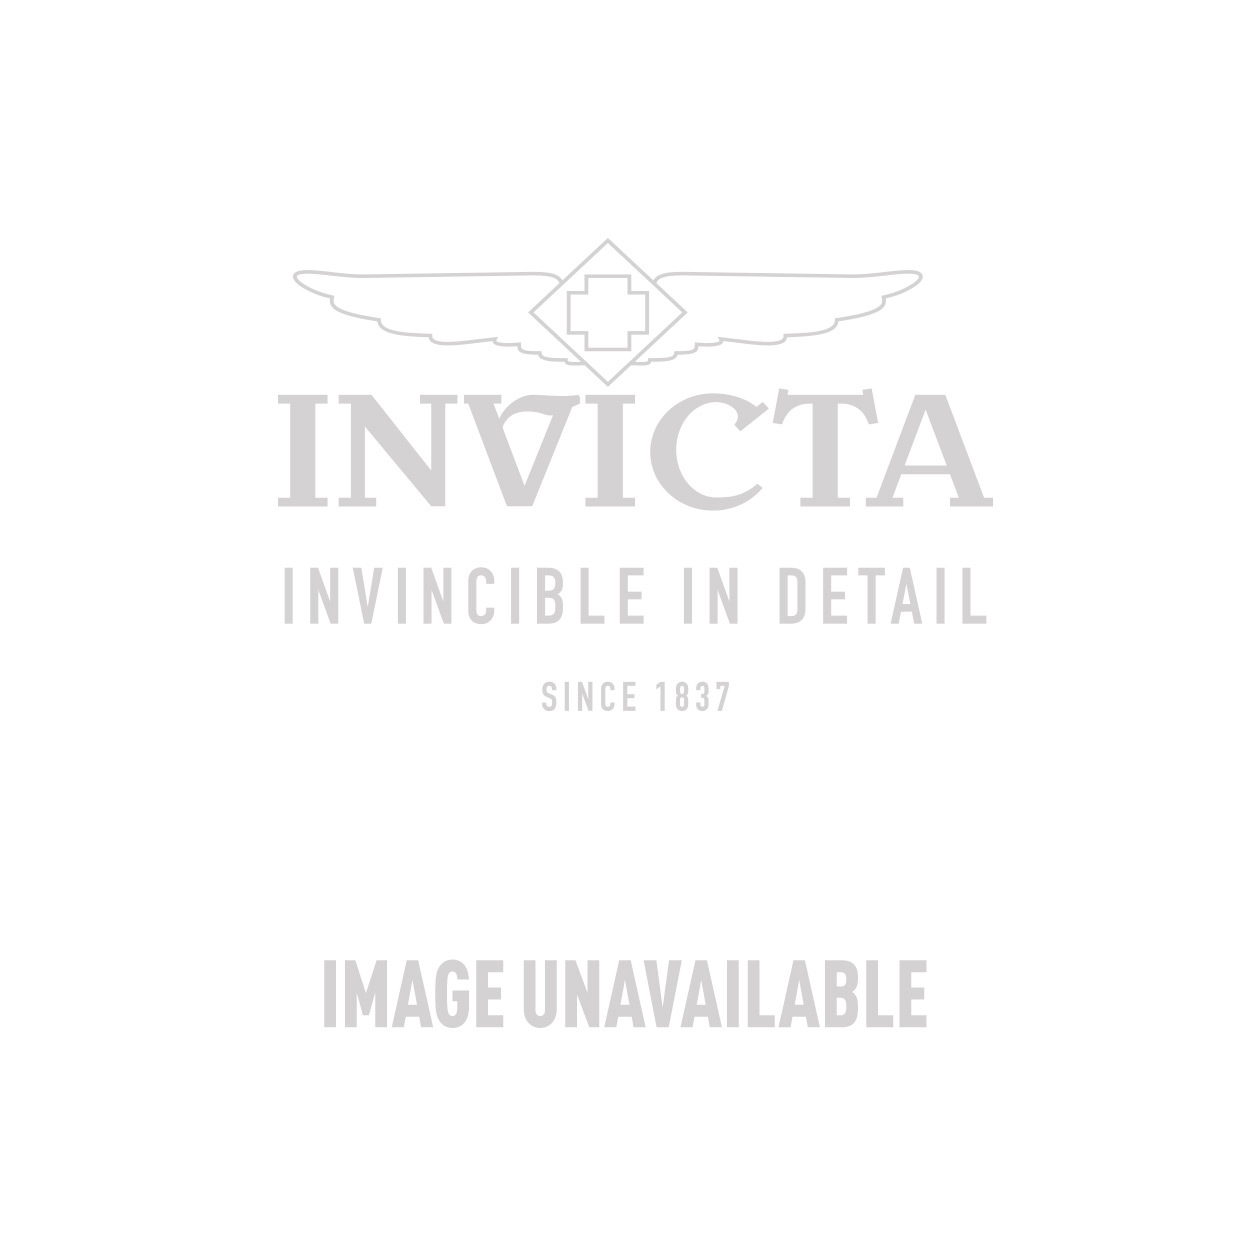 Invicta Angel Swiss Movement Quartz Watch - Gold case with Gold tone Stainless Steel band - Model 17494